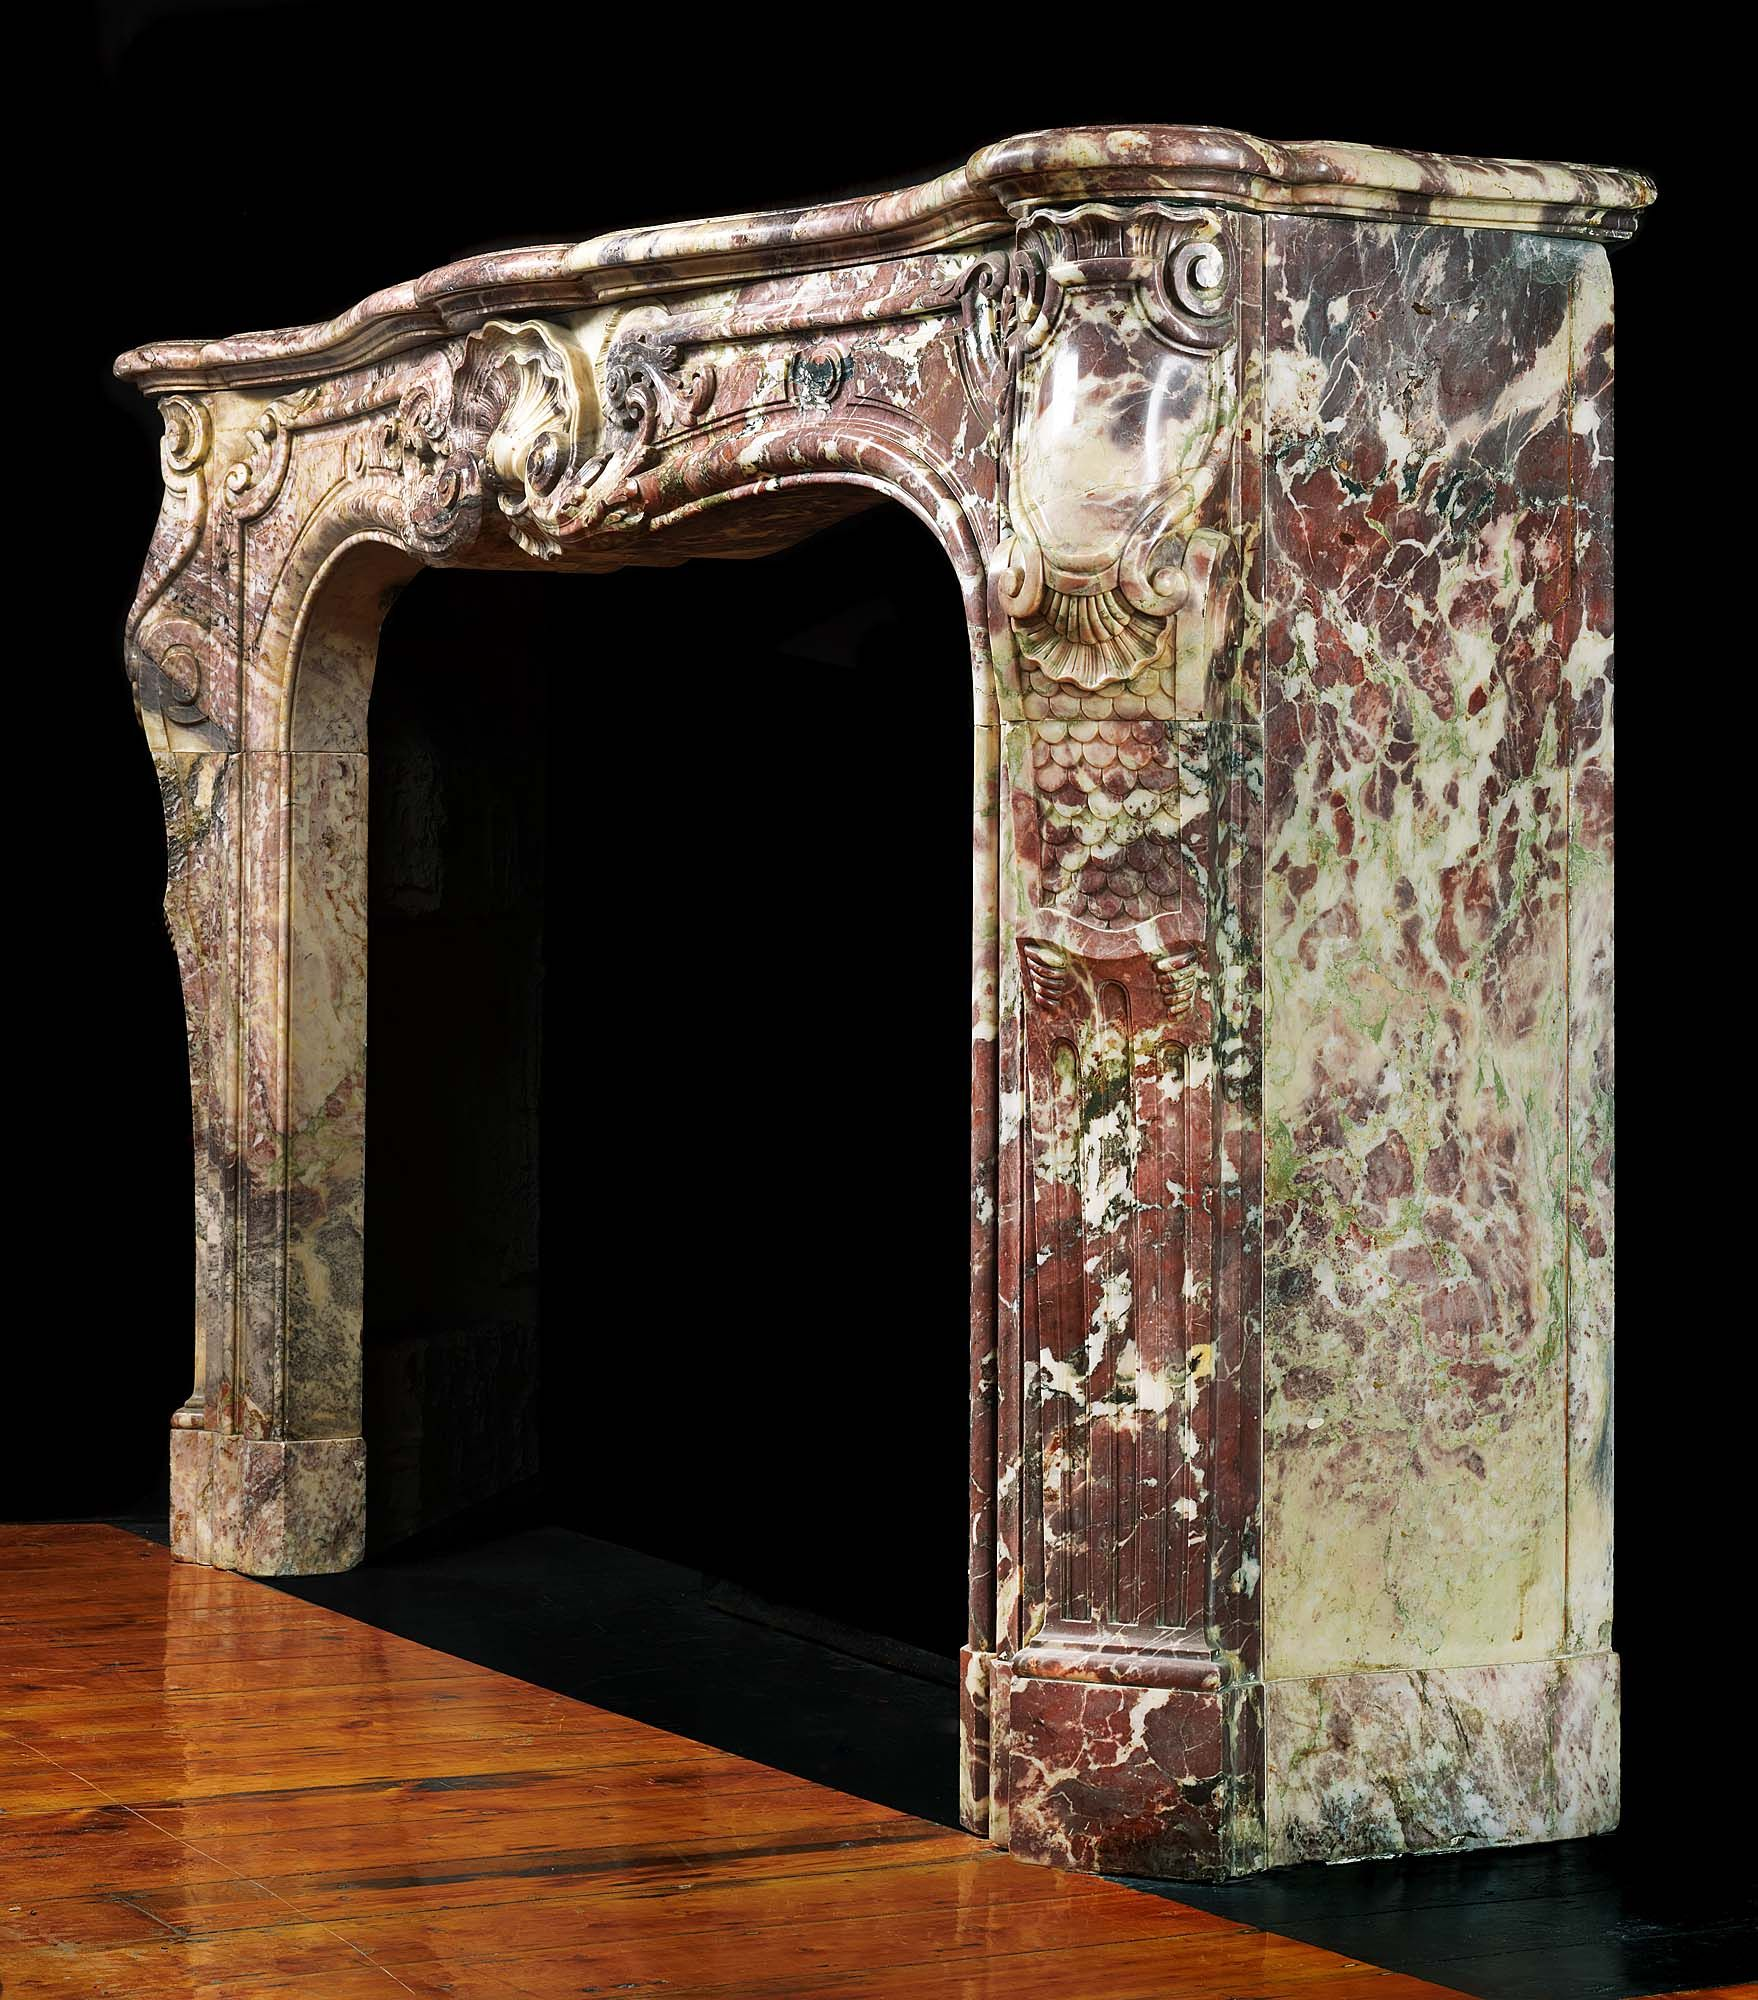 antique marble fireplace mantels. A French Rococo Antique Marble Fireplace Mantel Rare Antique Breche Violette Marble Fireplace  Breche